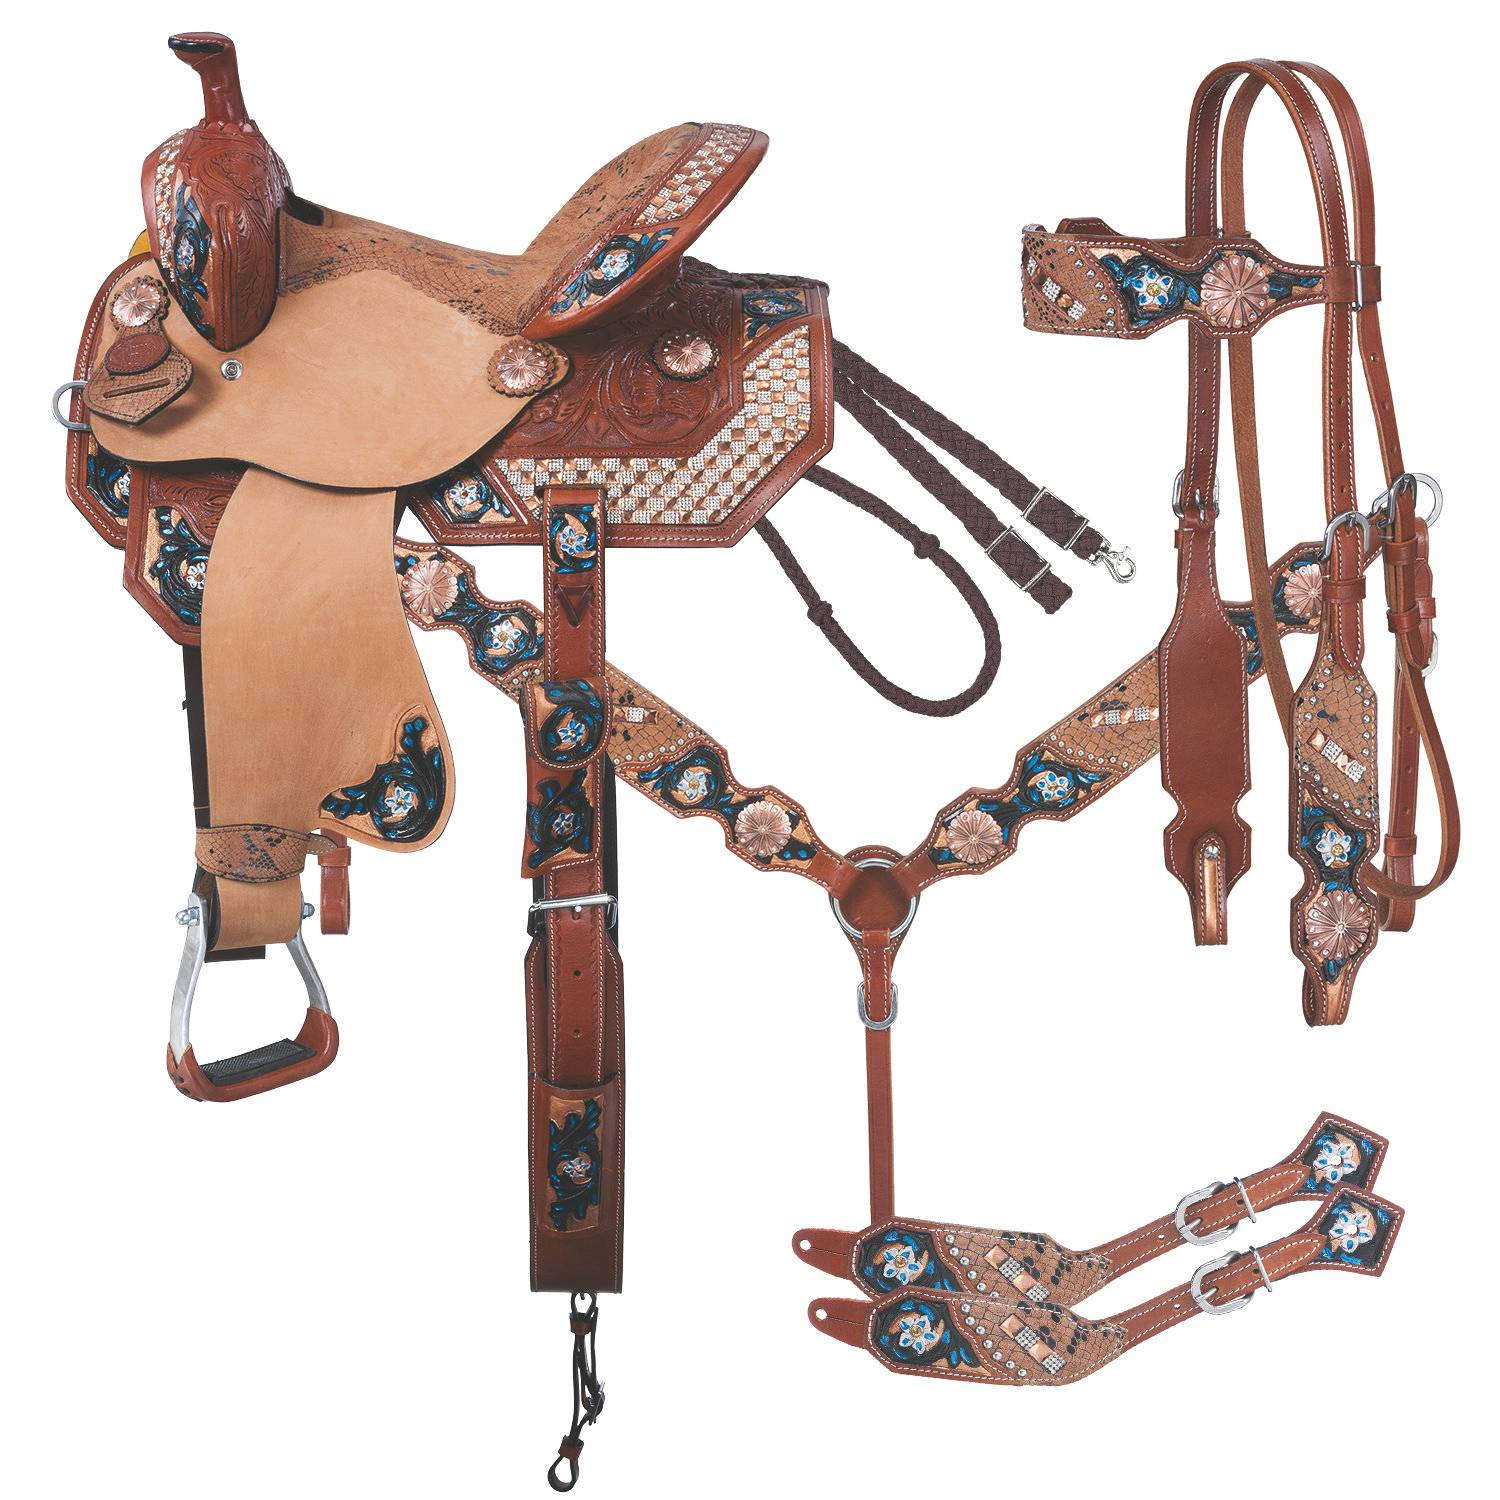 Silver Royal Savannah Barrel Saddle 5Pc Package